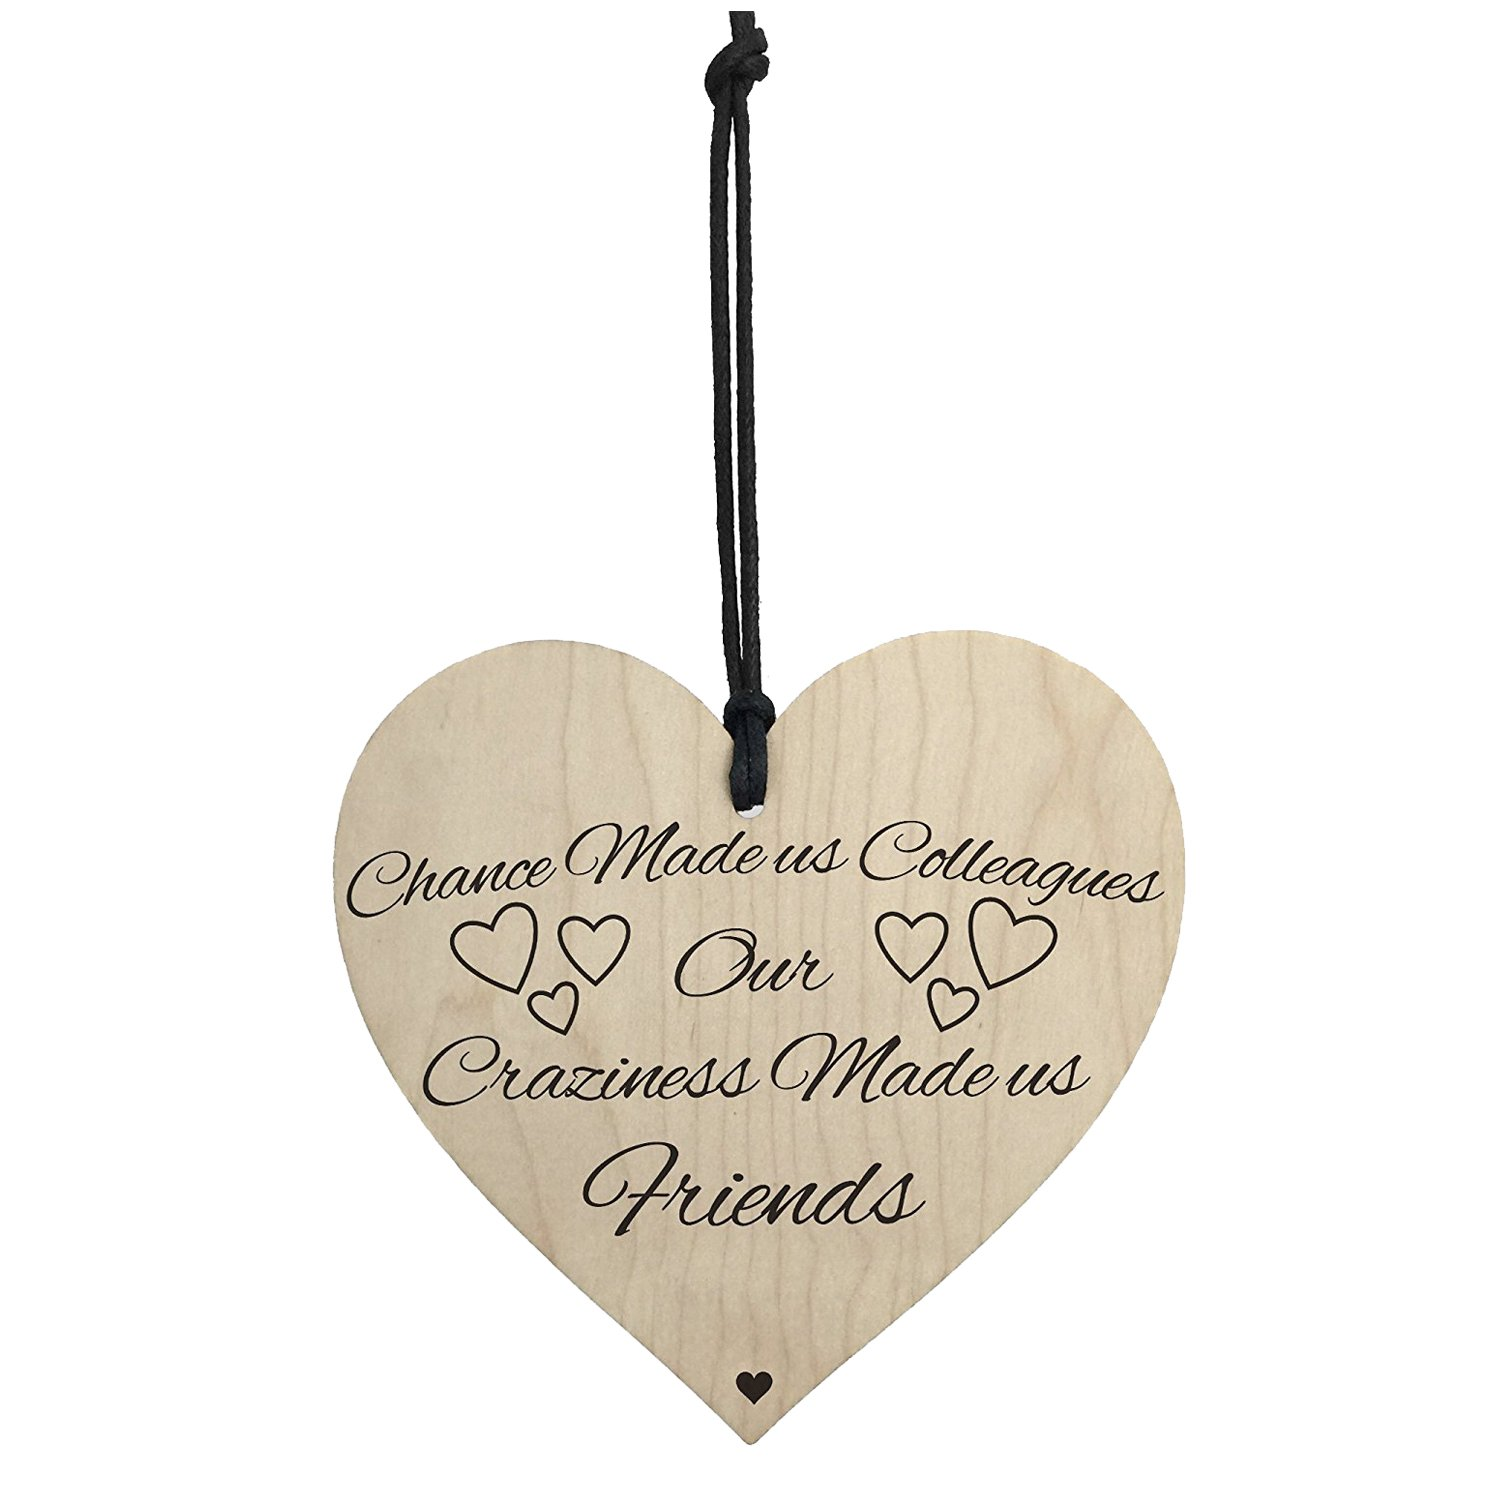 SODIAL(R) Chance Made Us Colleagues Novelty Wooden Hanging Heart Plaque Friendship Sign